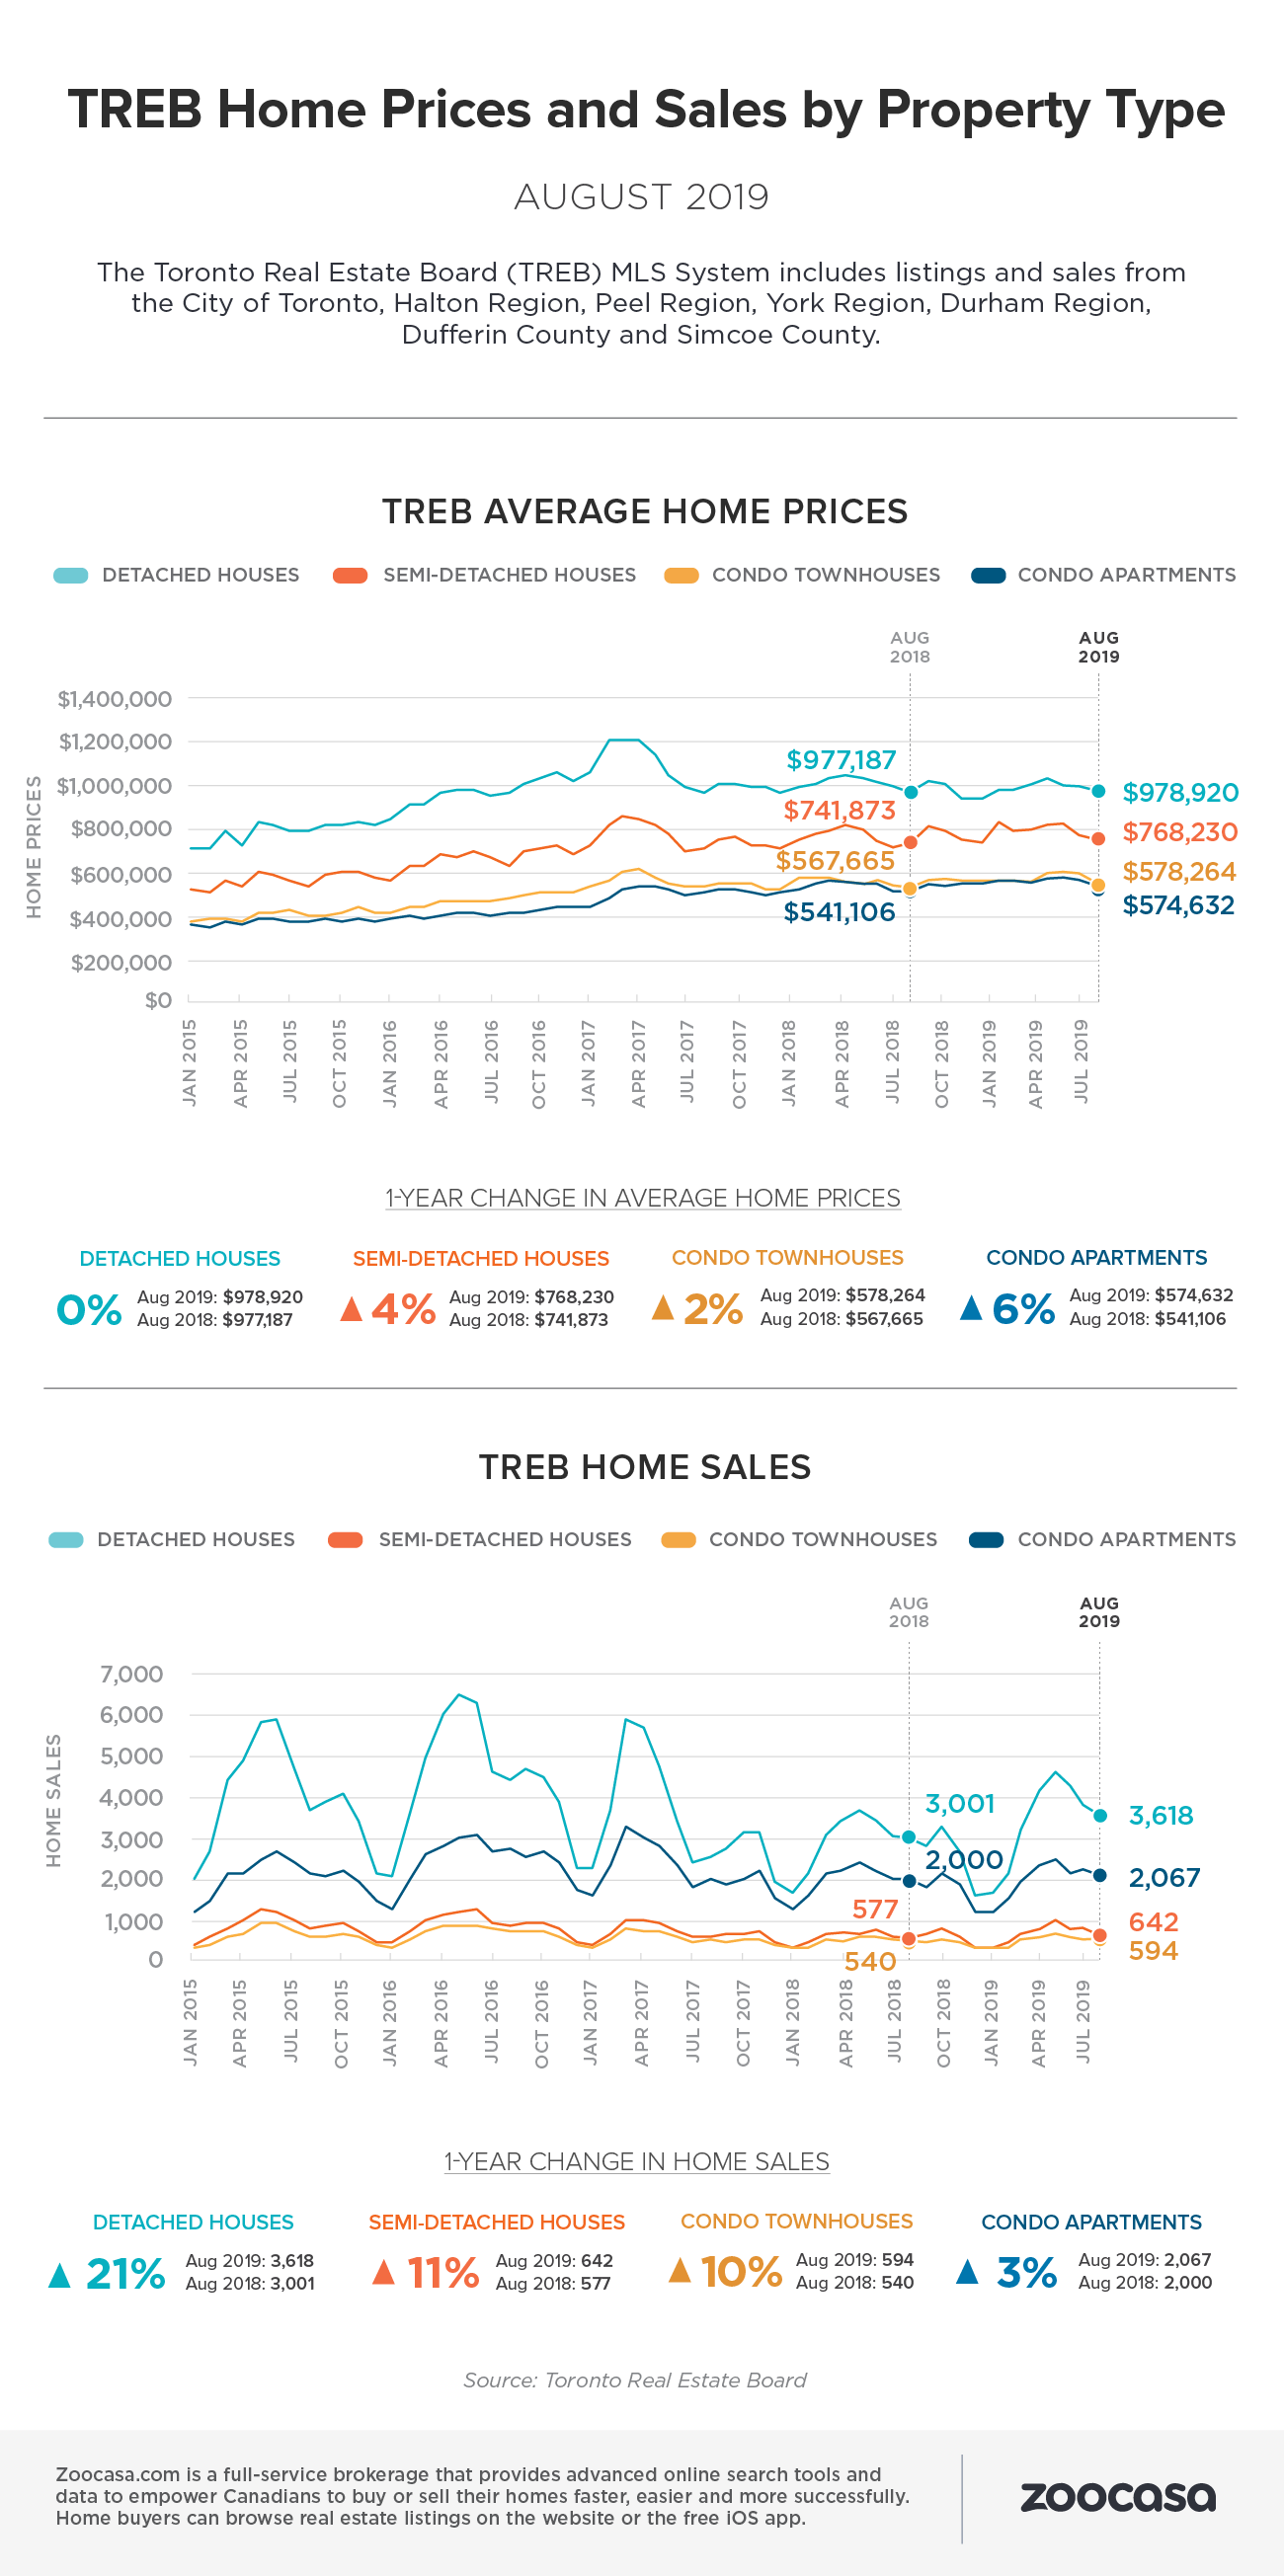 treb-home-sales-prices-aug-2019